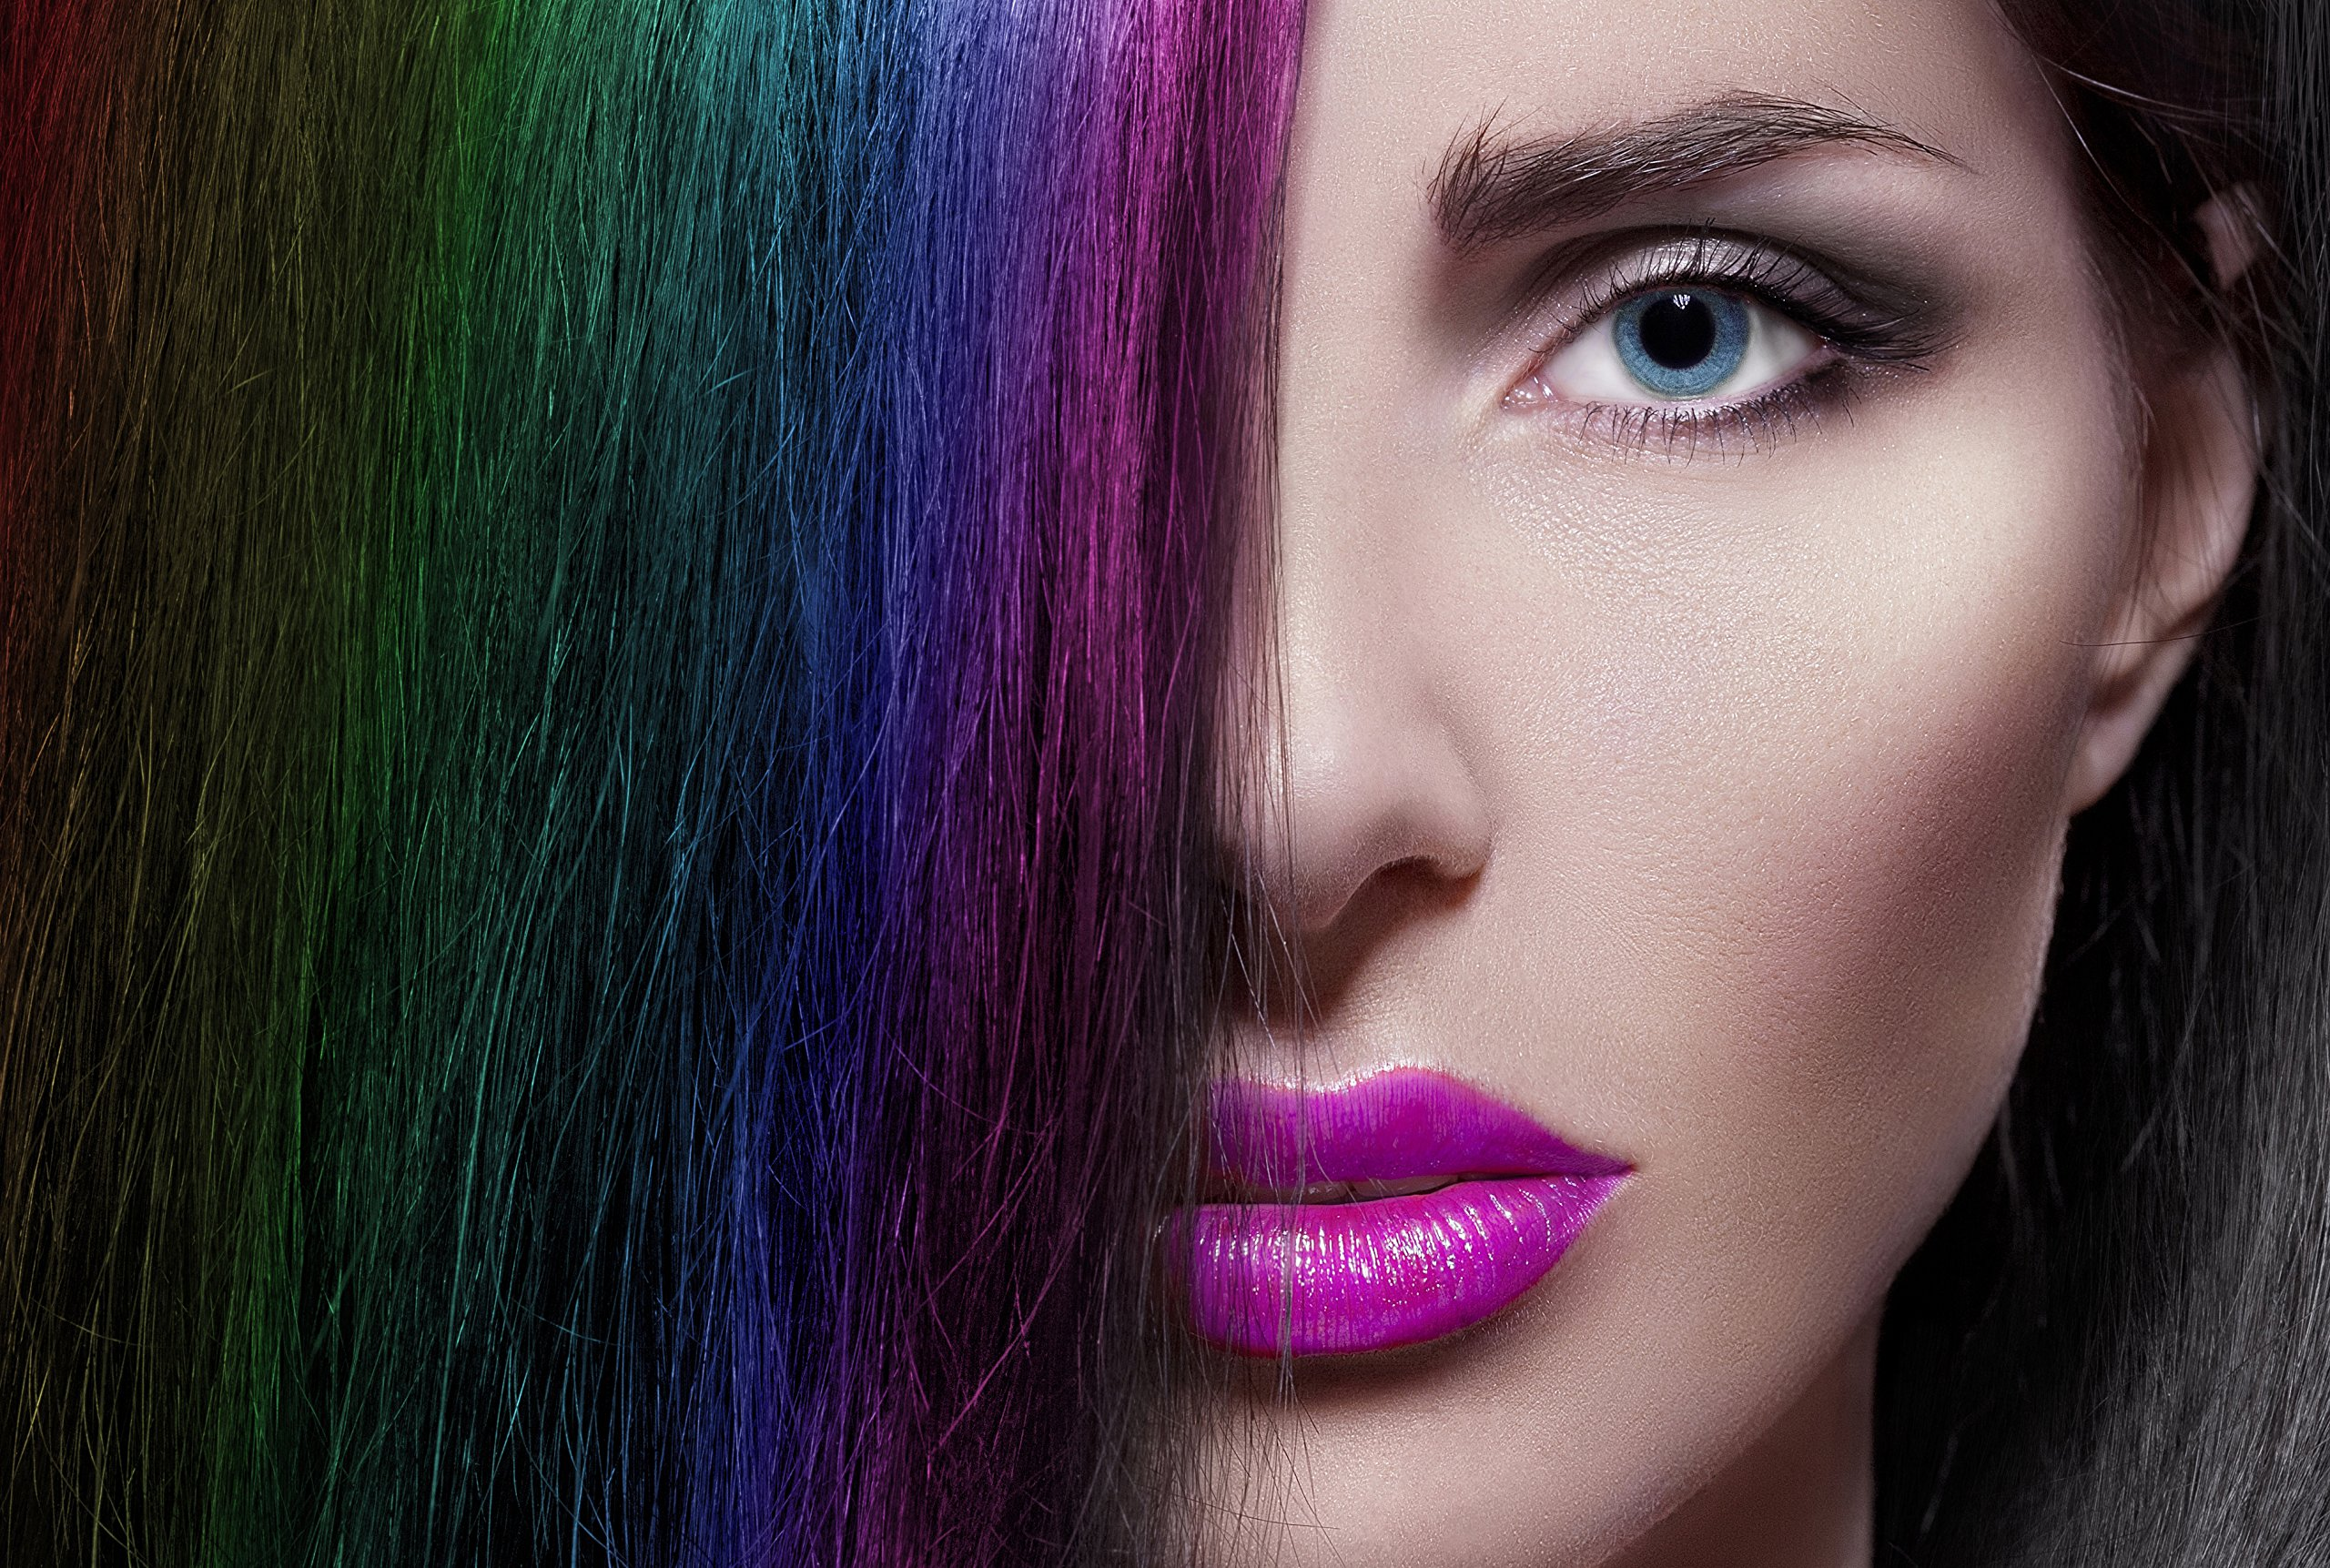 Hair Chalk 6 COUNT Vibrant, Long Lasting Temporary Hair Color Cream Pinky Petals